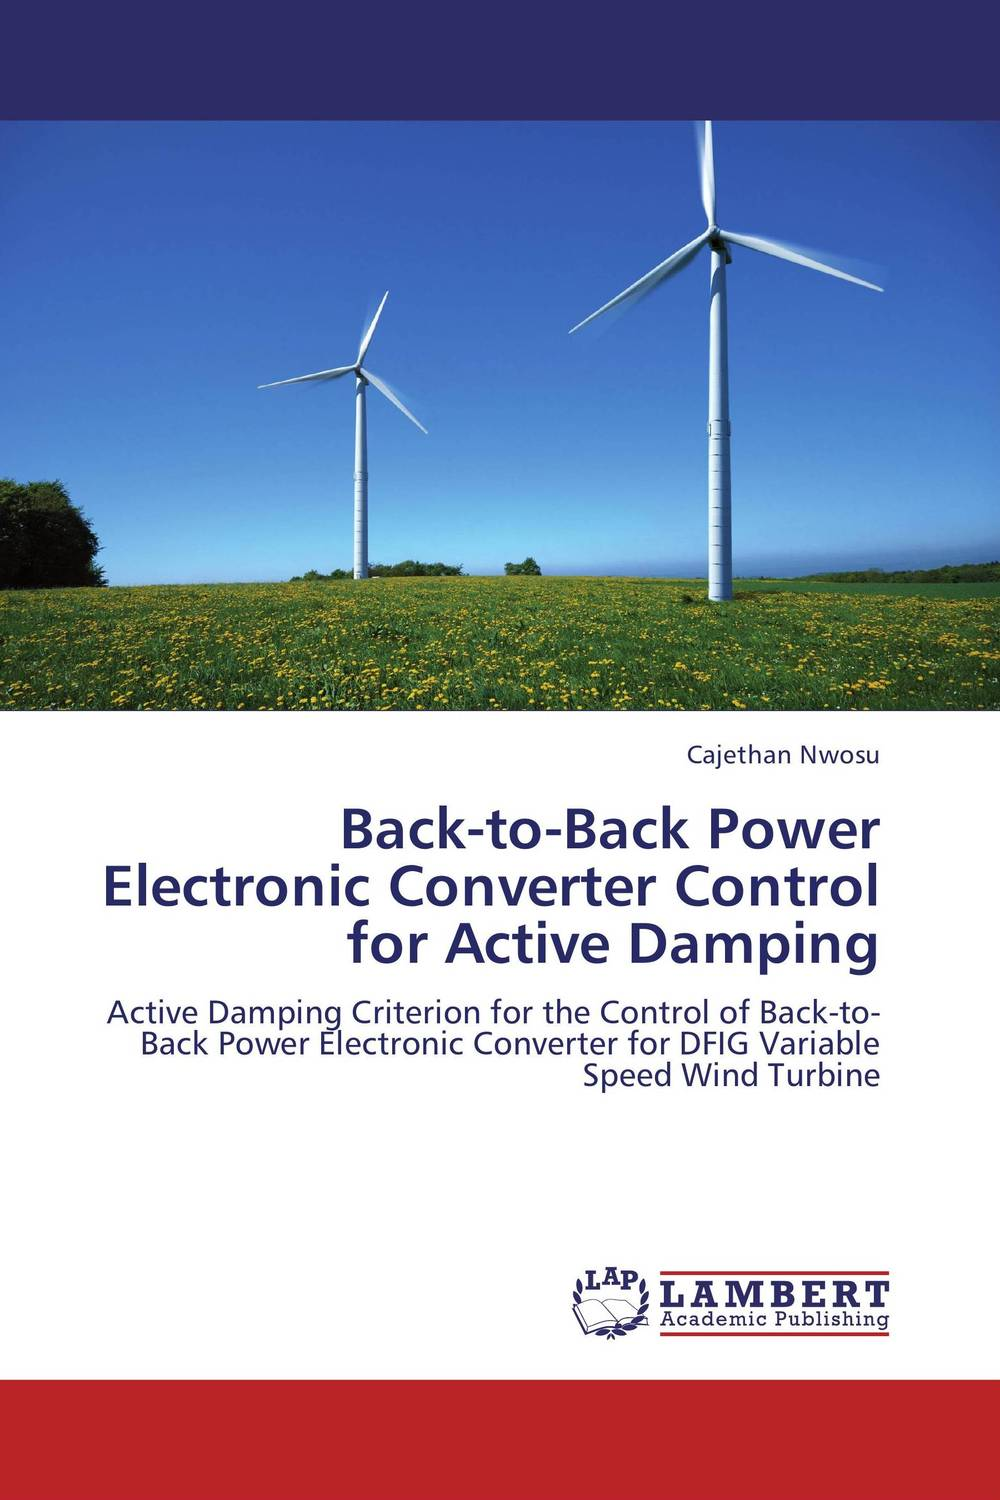 Back-to-Back Power Electronic Converter Control for Active Damping connecting a wind turbine to the grid